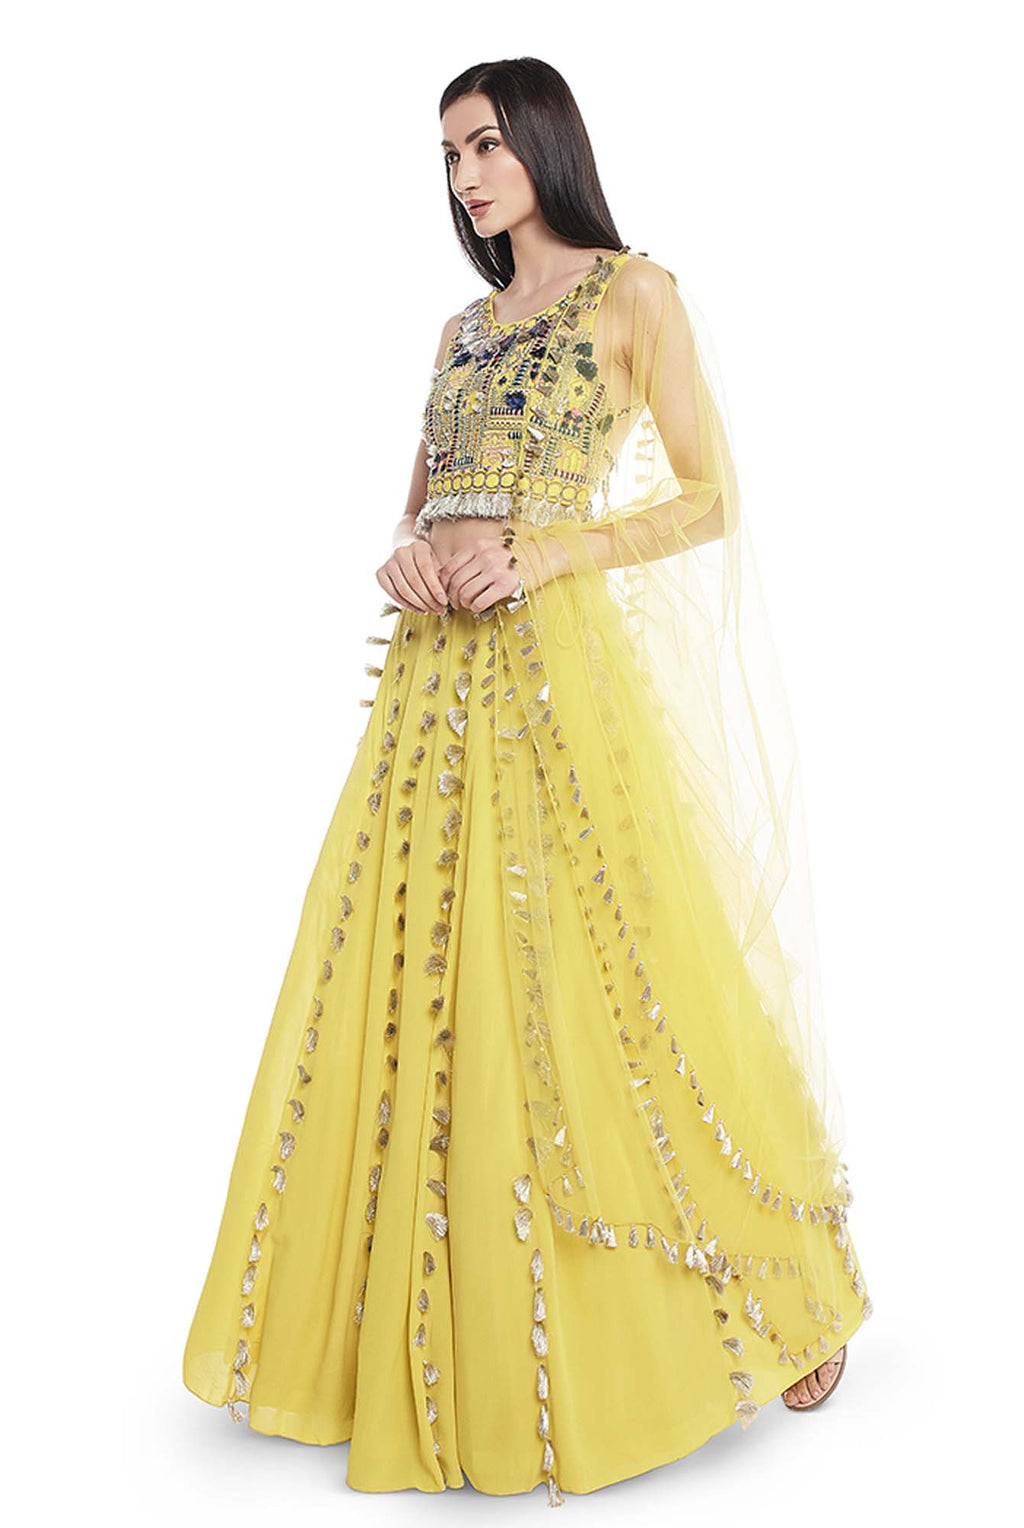 Lime Green Colour Georgette Embroidered Back Tie-Up Choli with Lehenga and Net Dupatta - Riviera Closet